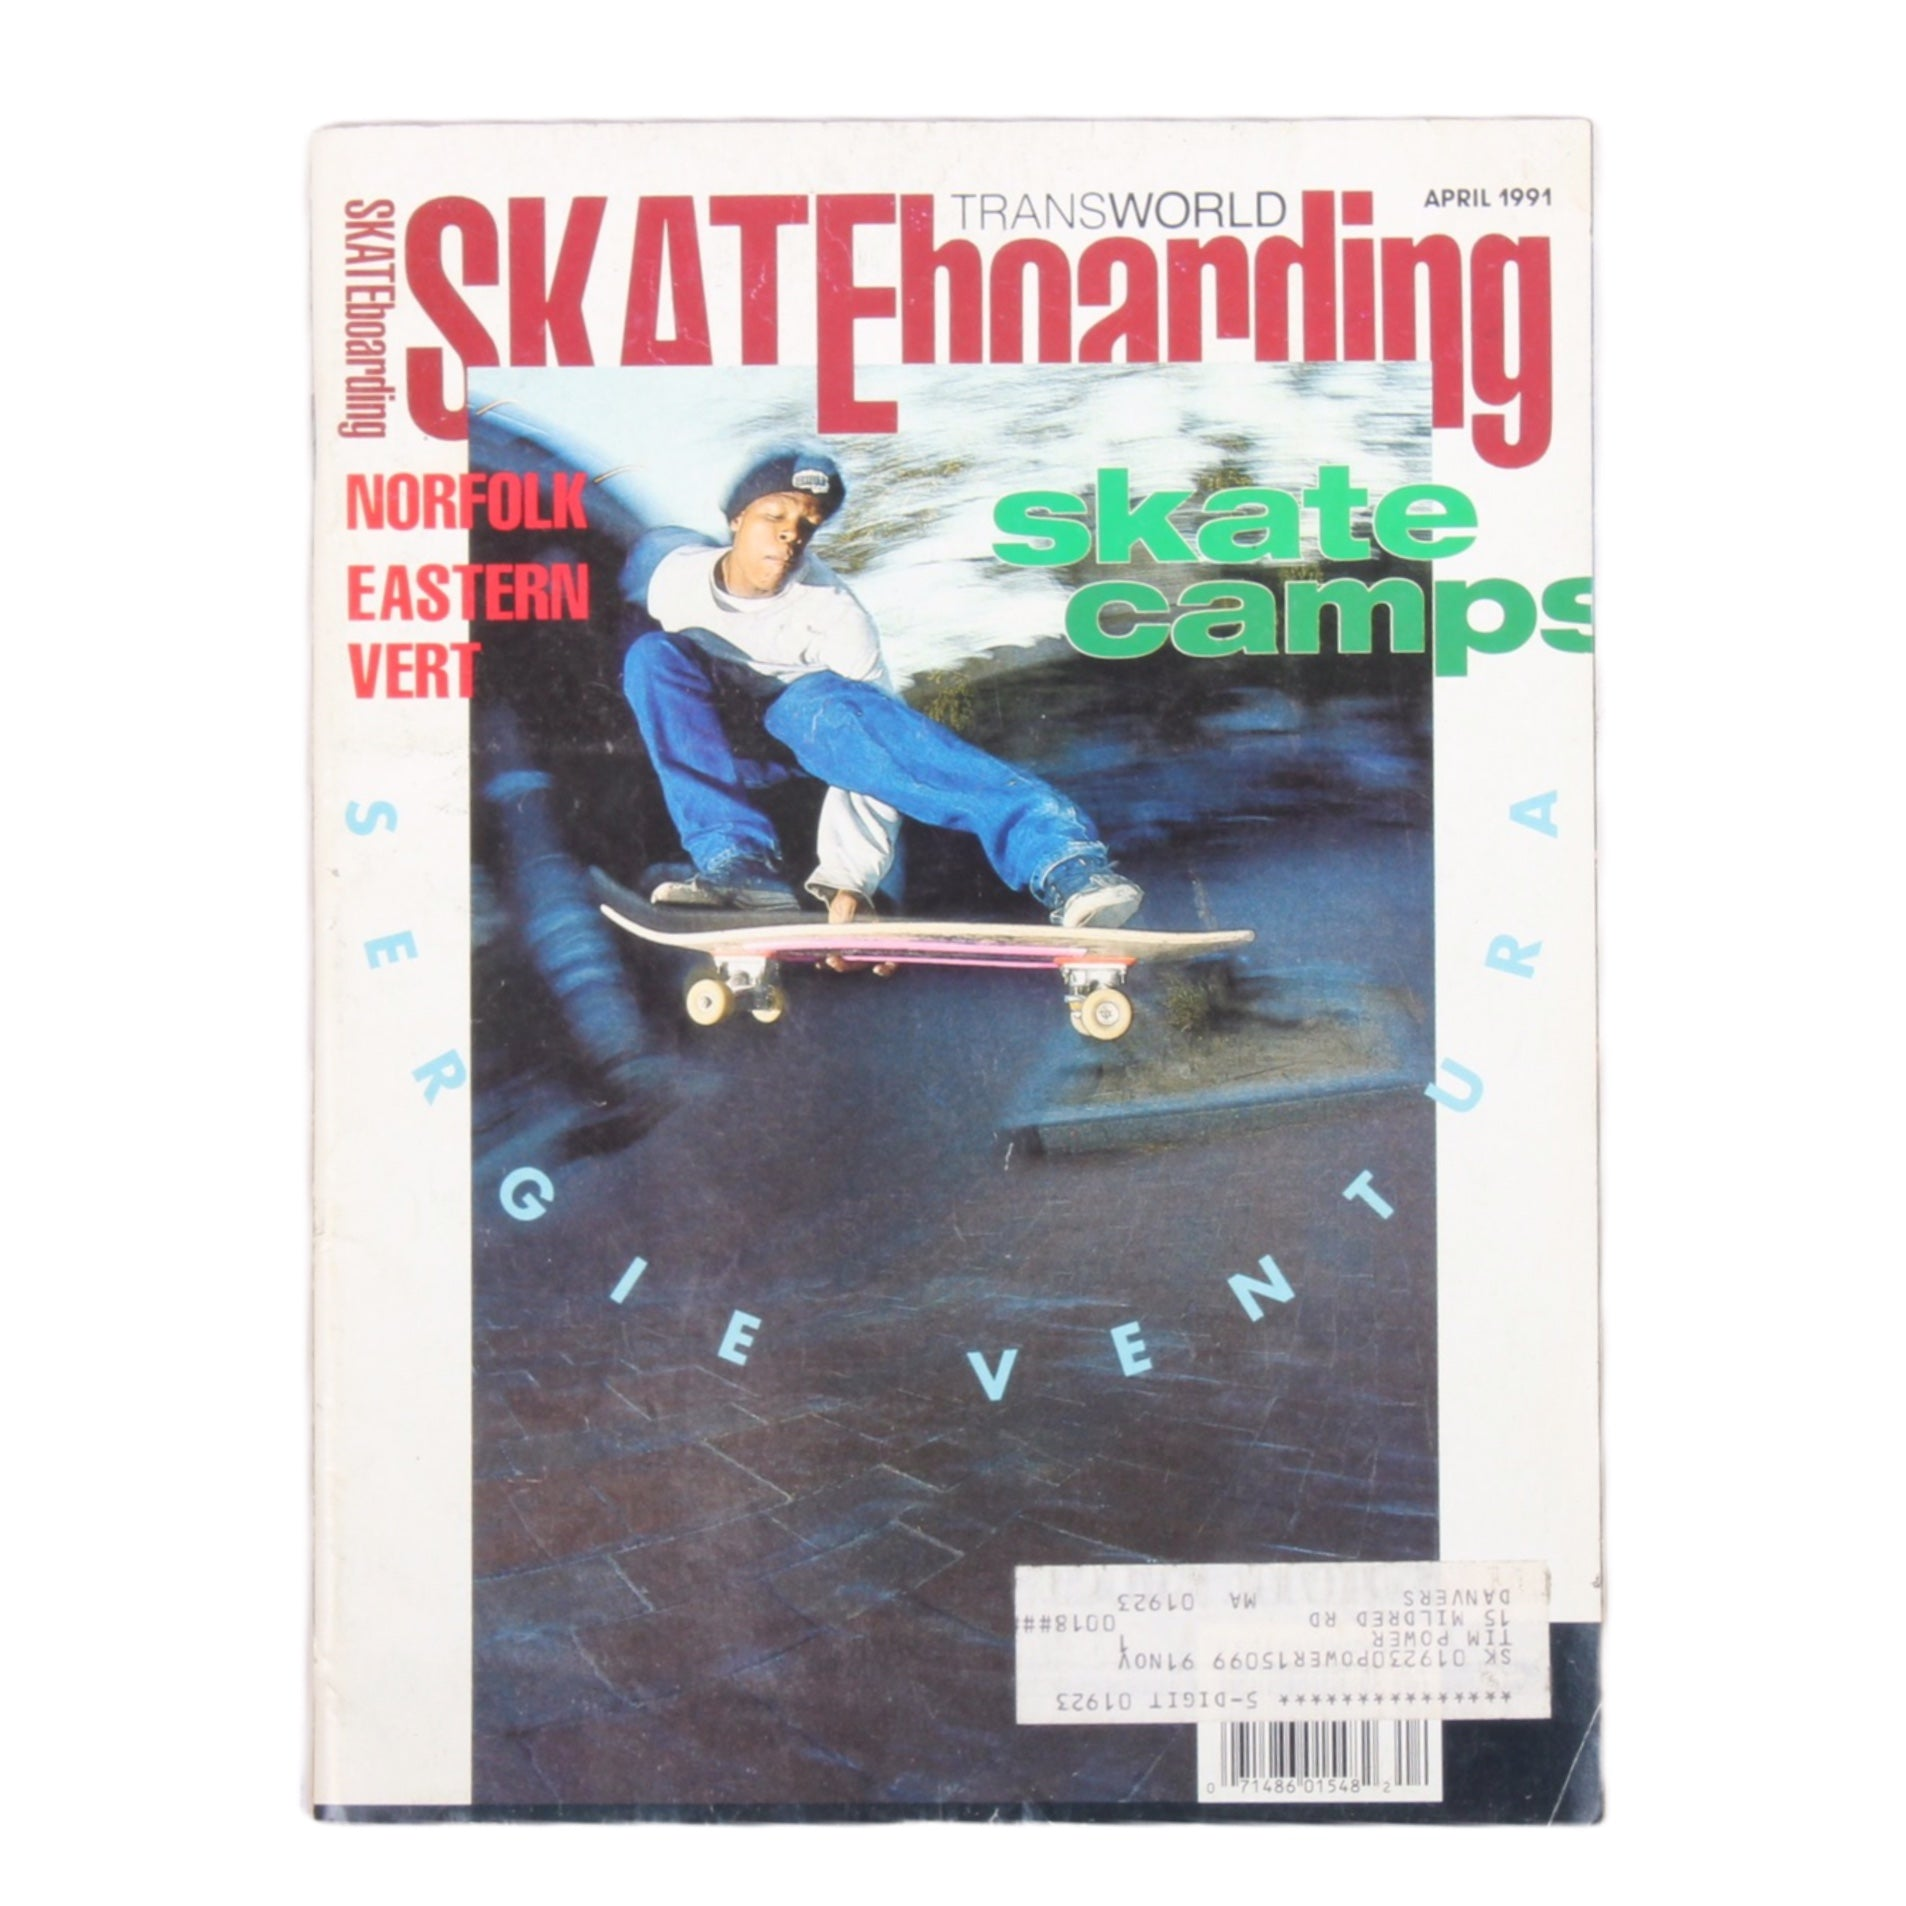 Overripe Transworld Skateboarding Magazine TWS April 1991